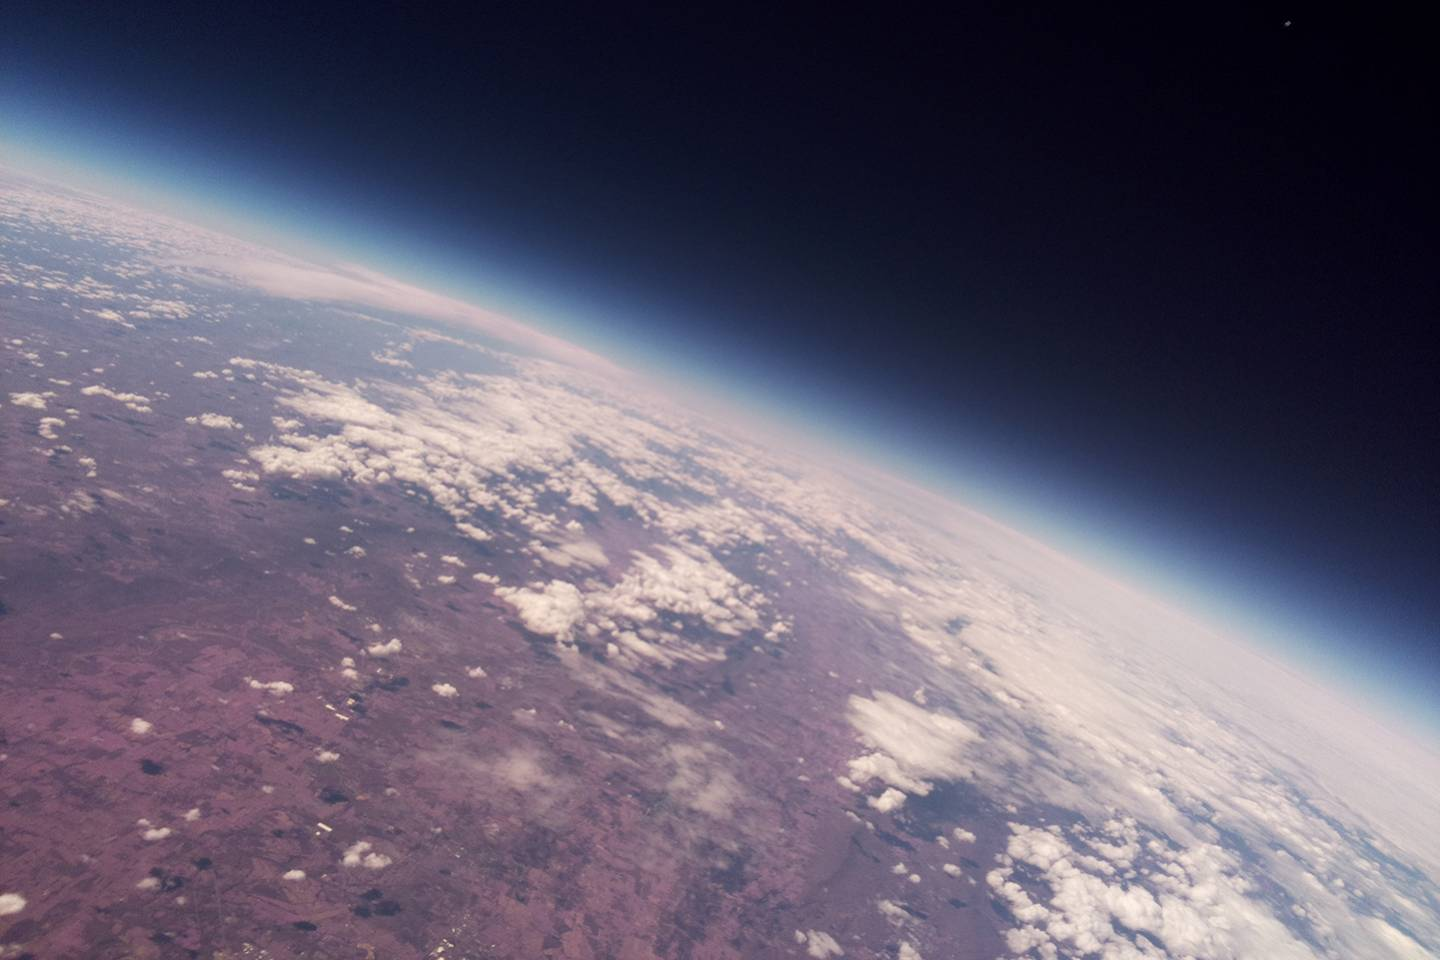 Image of the Earth taken from the Helium Balloon Team's test flight